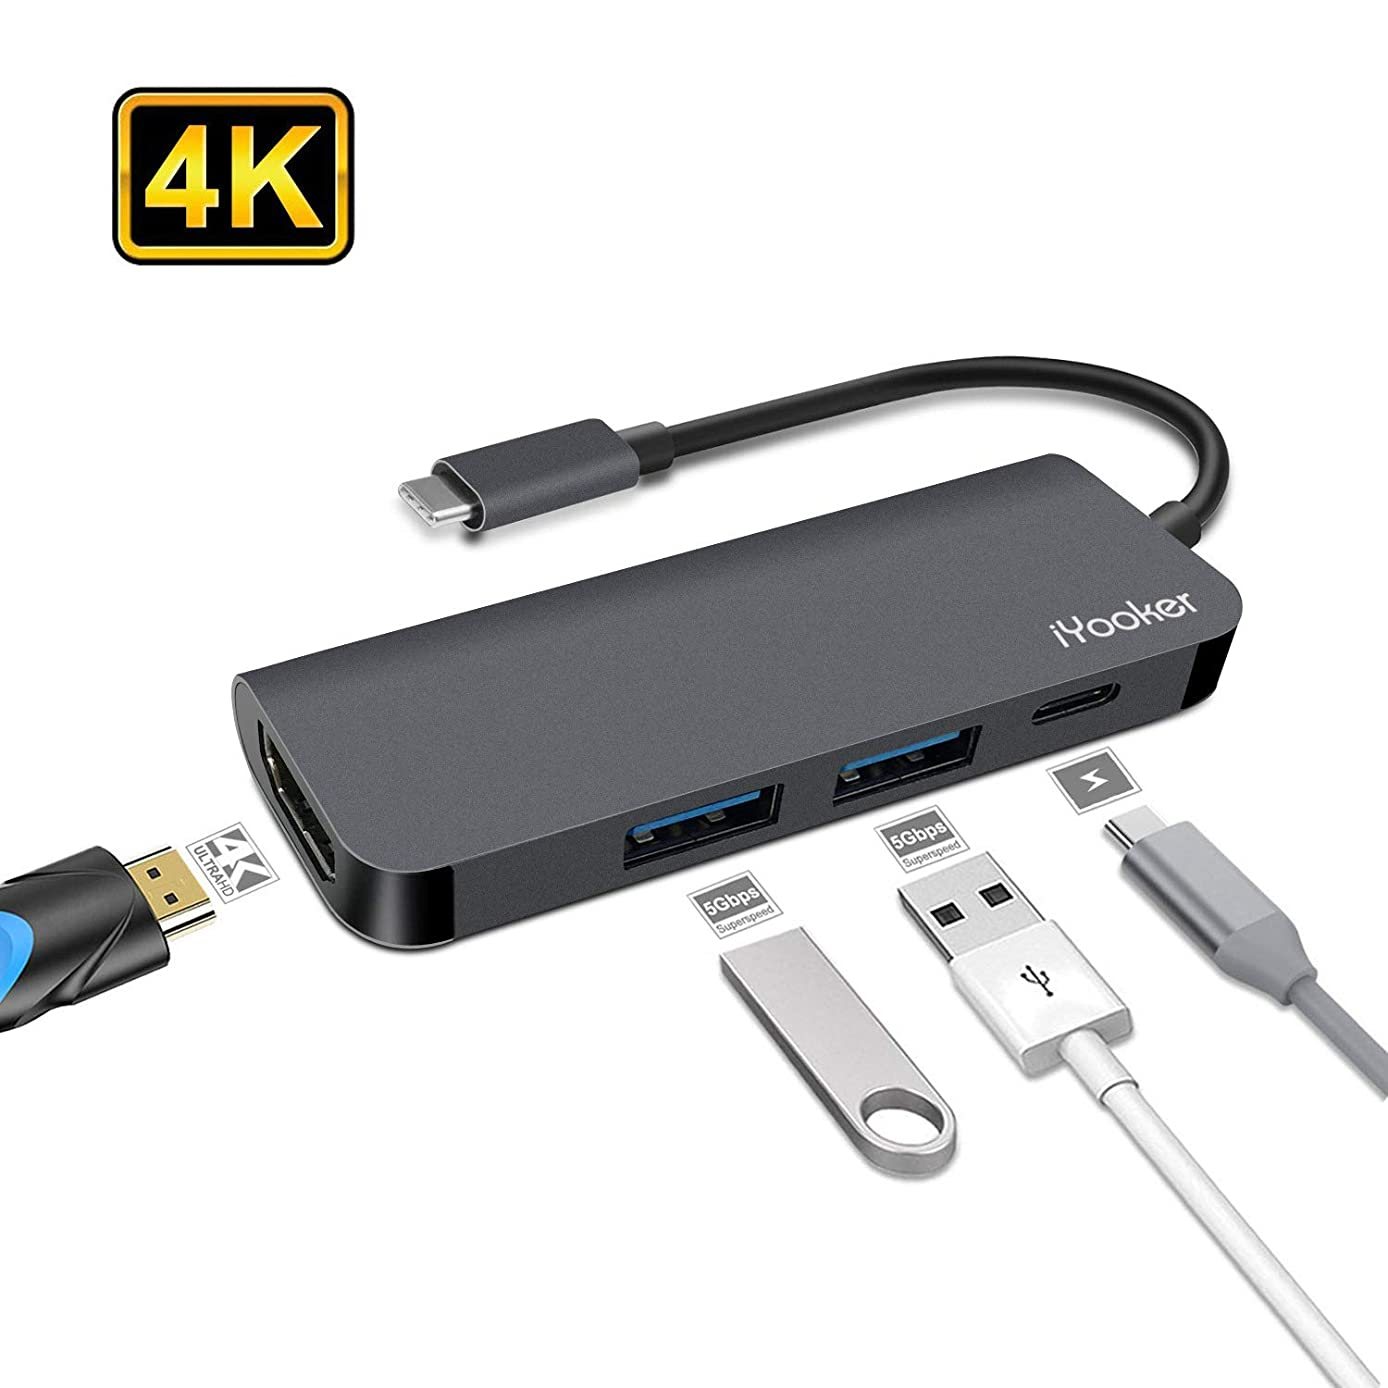 USB C Hub, iYooker 4 in 1 Type C Hub to HDMI 4K Video Convertor with 2 USB3.0 and PD Charging for Computers with USB C Port, DELL XPS, Chromebook and more Devices